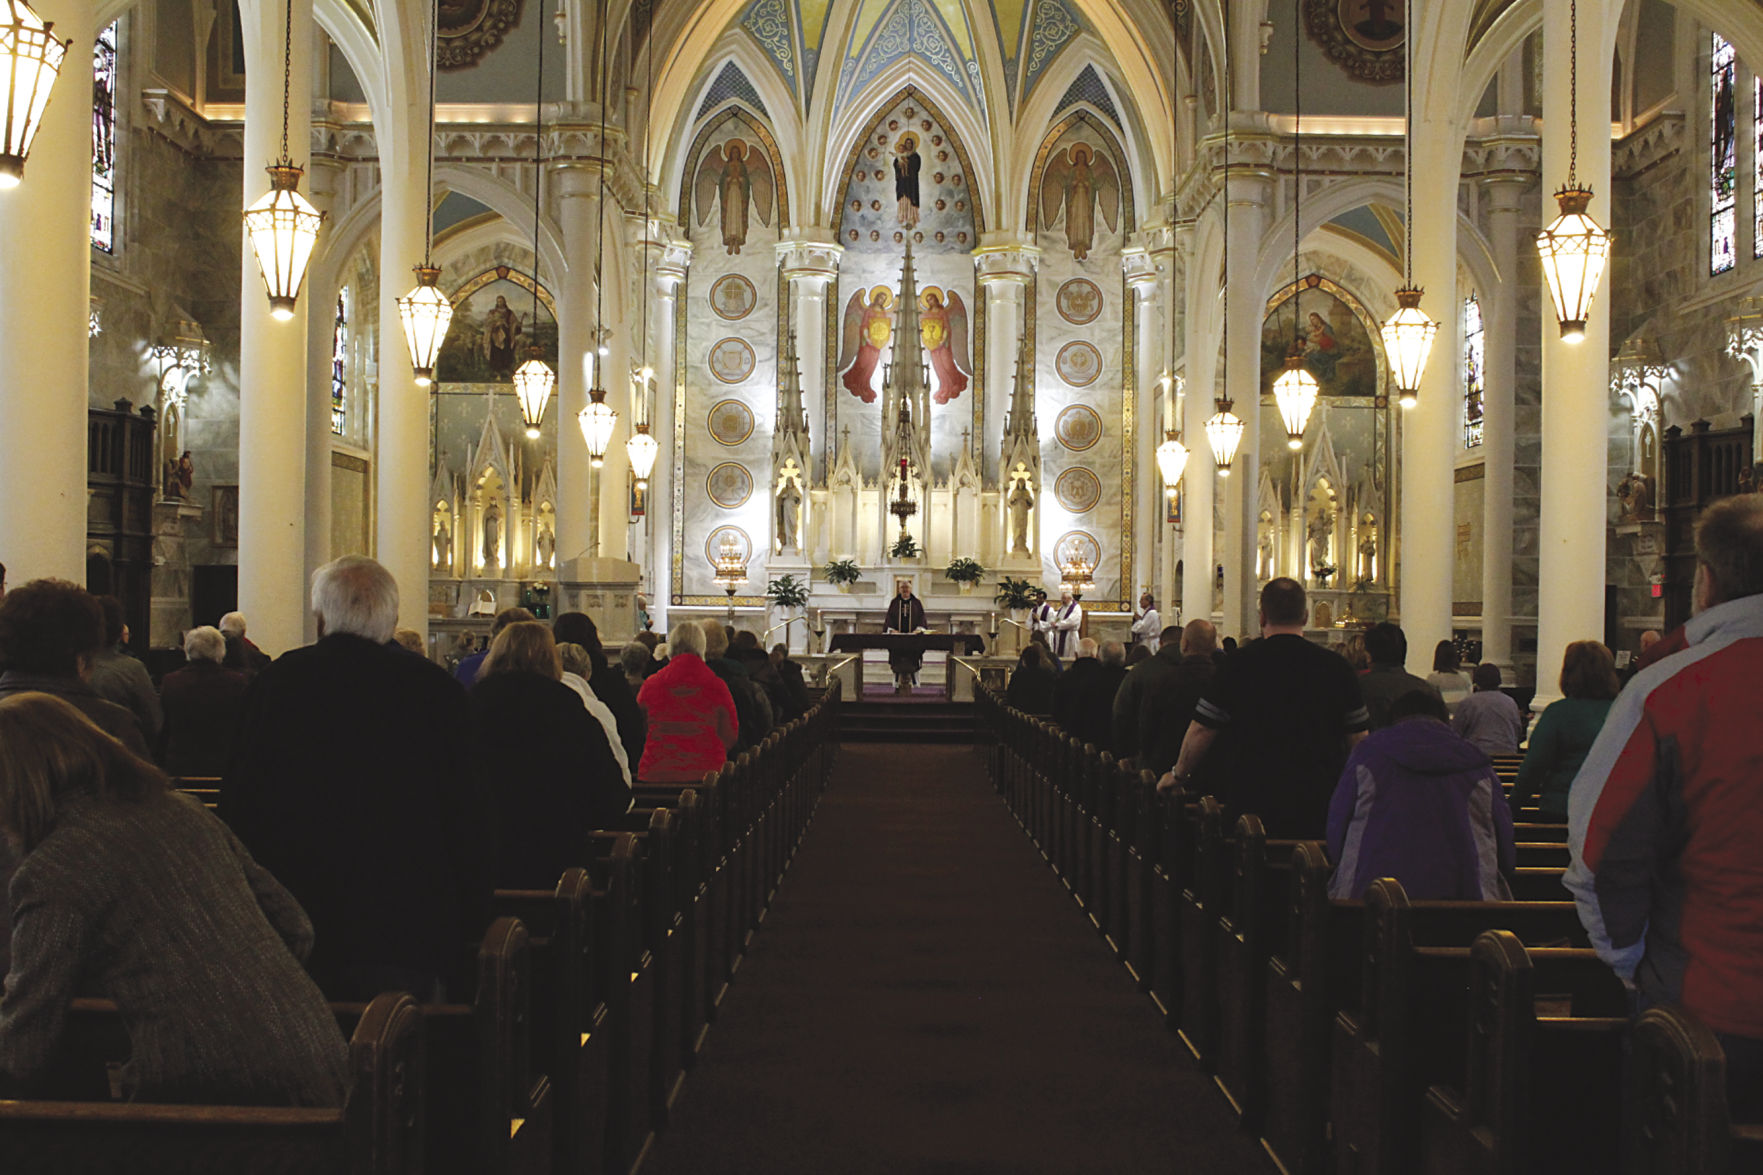 The 102 year old Roman Catholic church has been